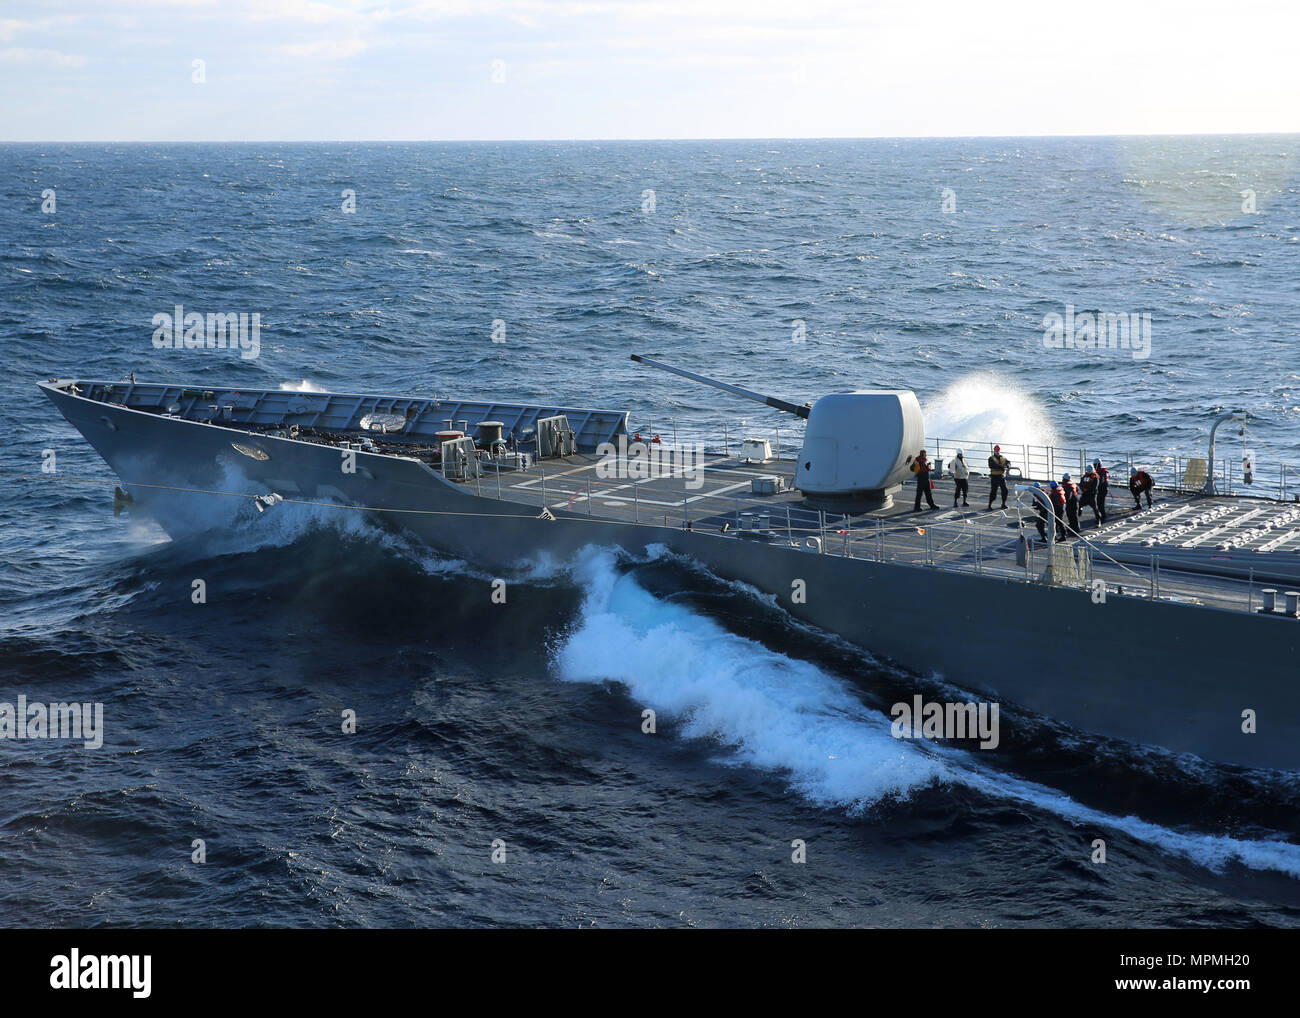 170323-N-OH262-780  ATLANTIC OCEAN (March 23, 2017) U.S. Navy Sailors assigned to the Ticonderoga-class guided-missile crusier USS San Jacinto (CG 56) man the phone and distance line during a replenishment-at-sea with the Military Sealift Command fast combat support ship USNS Arctic (T-AOE 8). (U.S. Navy photo by Bill Mesta/Released) - Stock Image